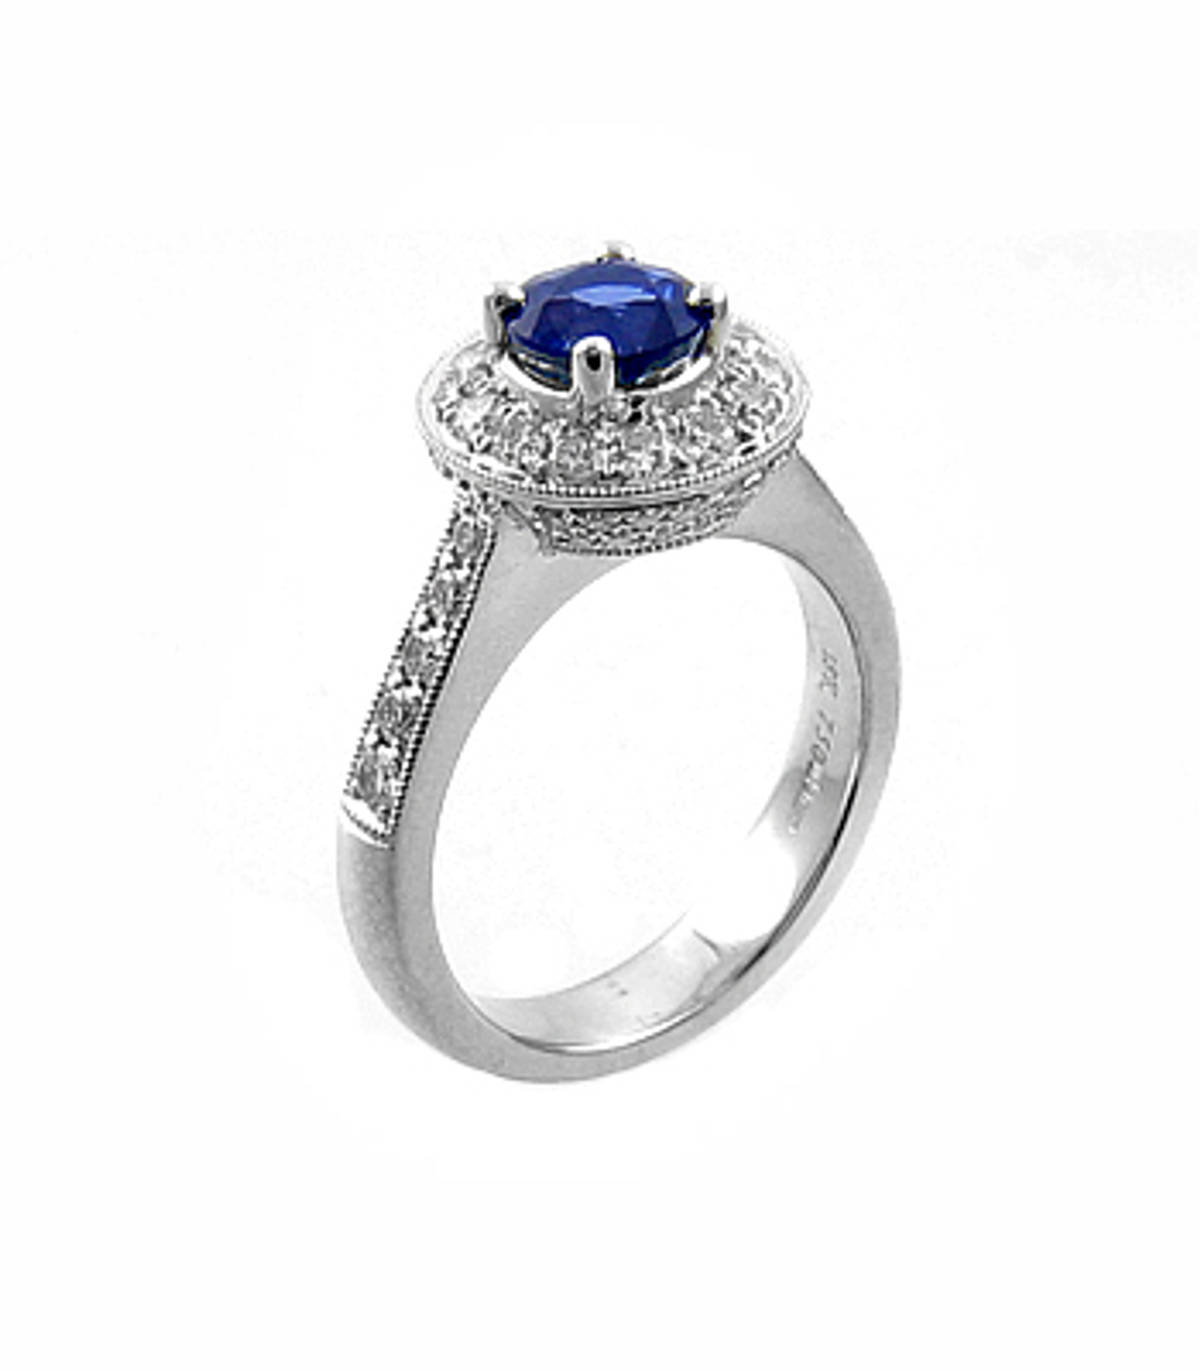 Sapphire and diamond cluster 18 carat white gold ring